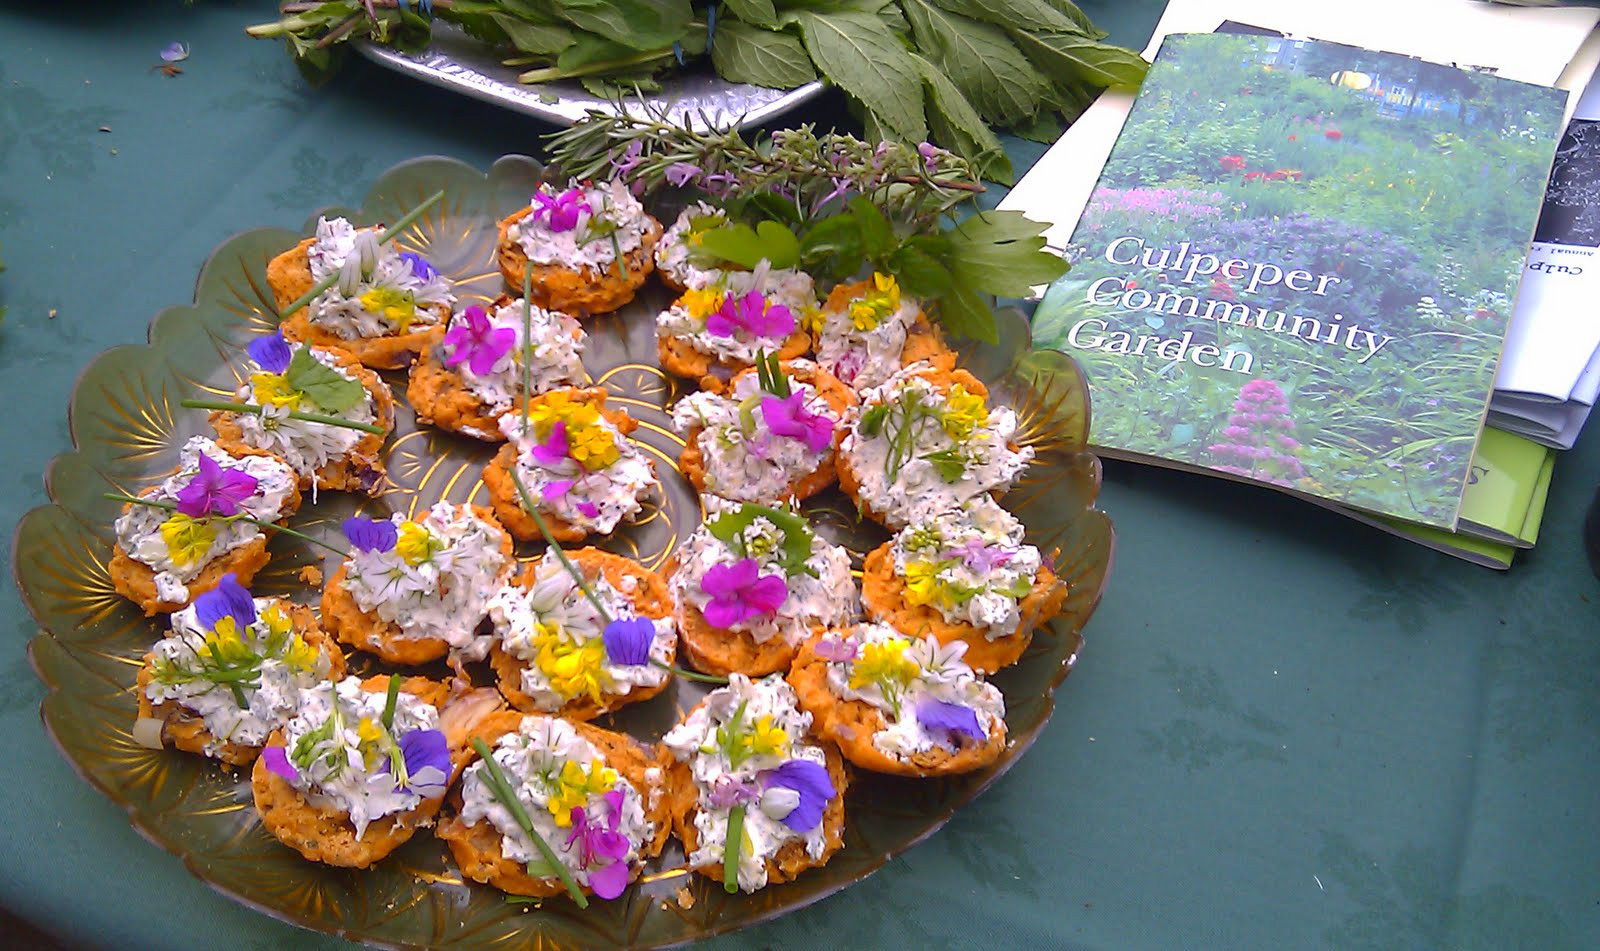 herb scones with Edible flowers